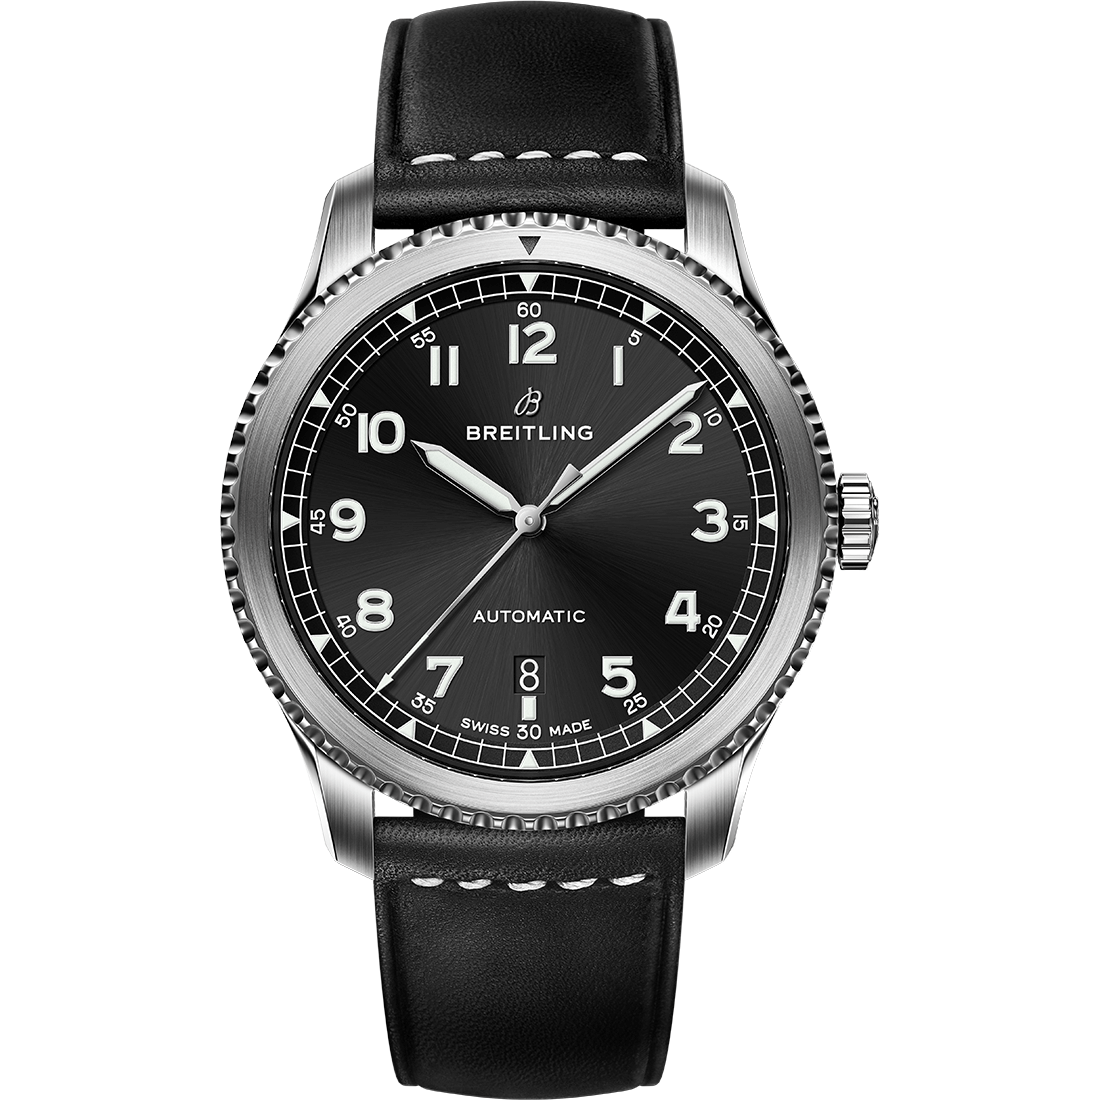 navitimer-8-automatic-with-black-dial-and-black-leather-strap